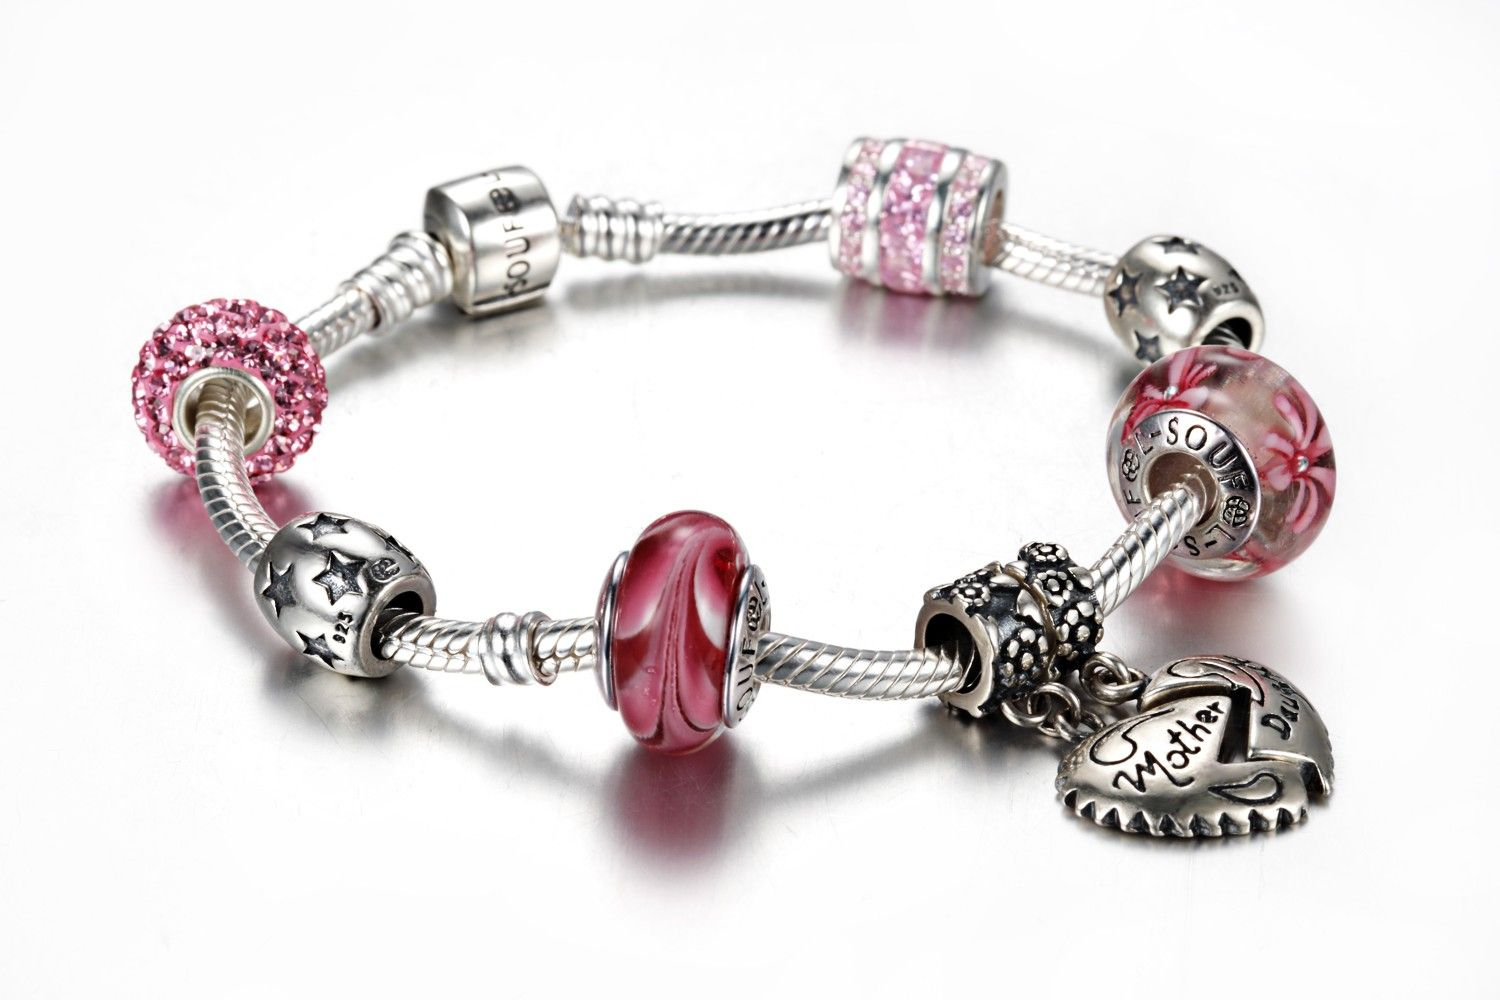 9d38e6967 Soufeel Mother Daughter Charms Fit Pandora Bracelet, add Soufeel charms  into your Pandora Charms Jewelry Box